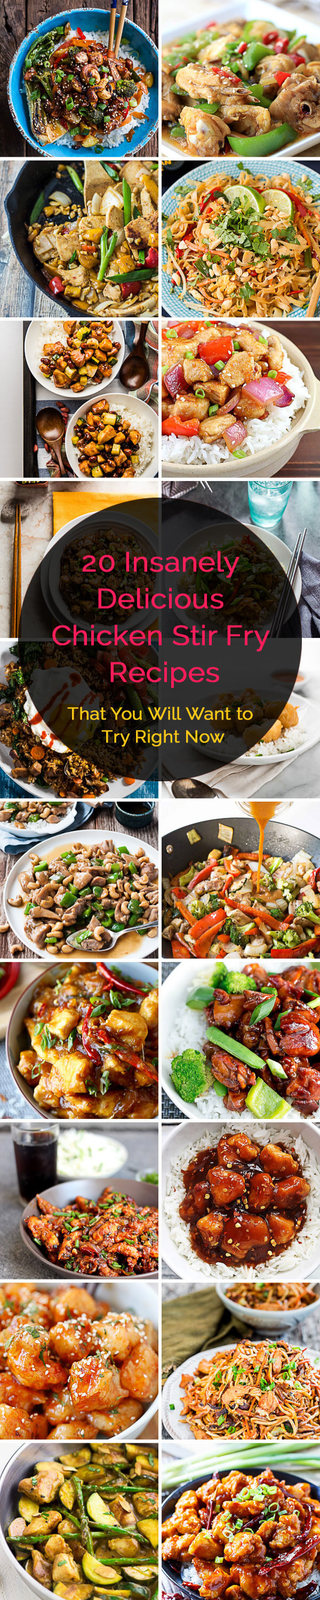 20 Insanely Delicious Chicken Stir Fry Recipes That You Will Want to Try Right Now